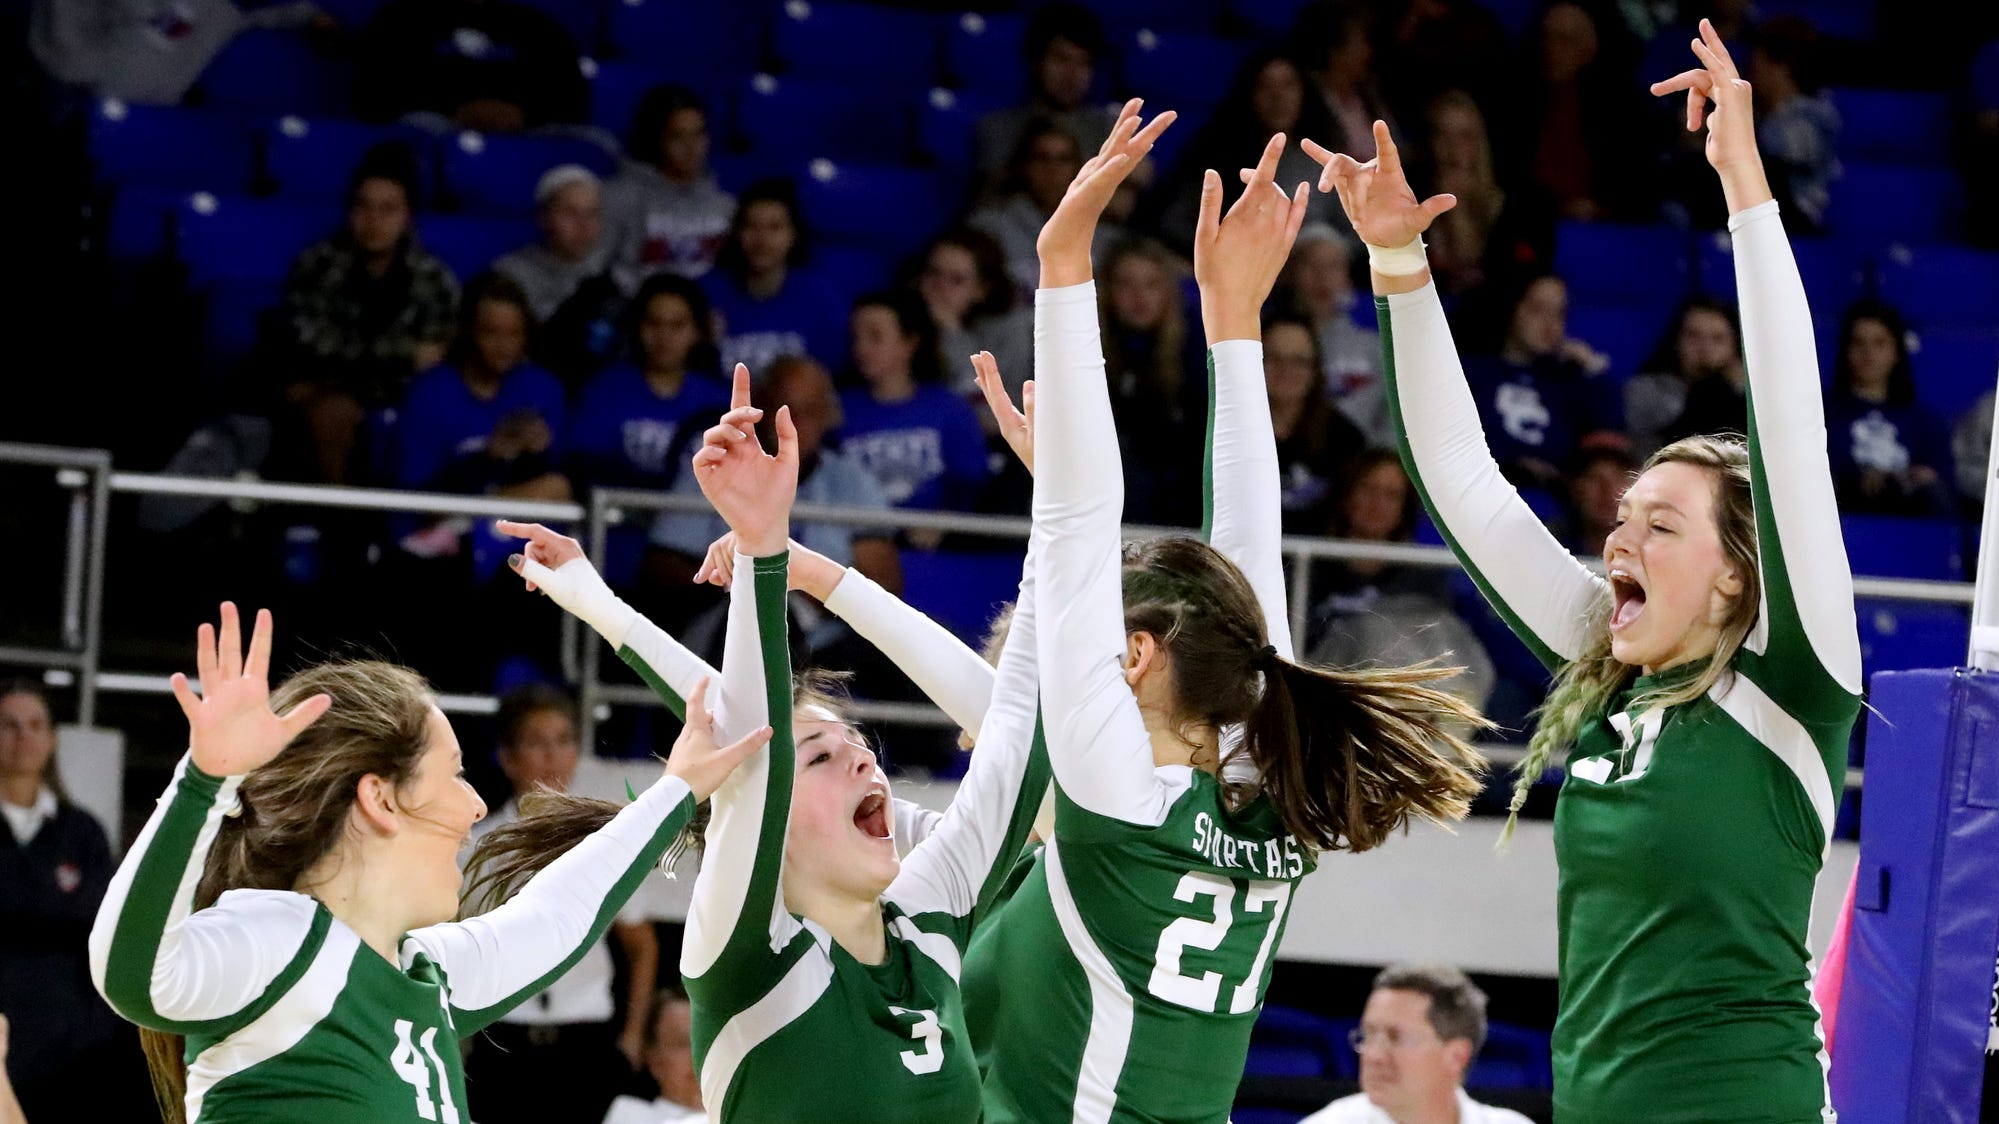 Kayleigh Hames leads Webb to sixth straight Division II-A state volleyball championship